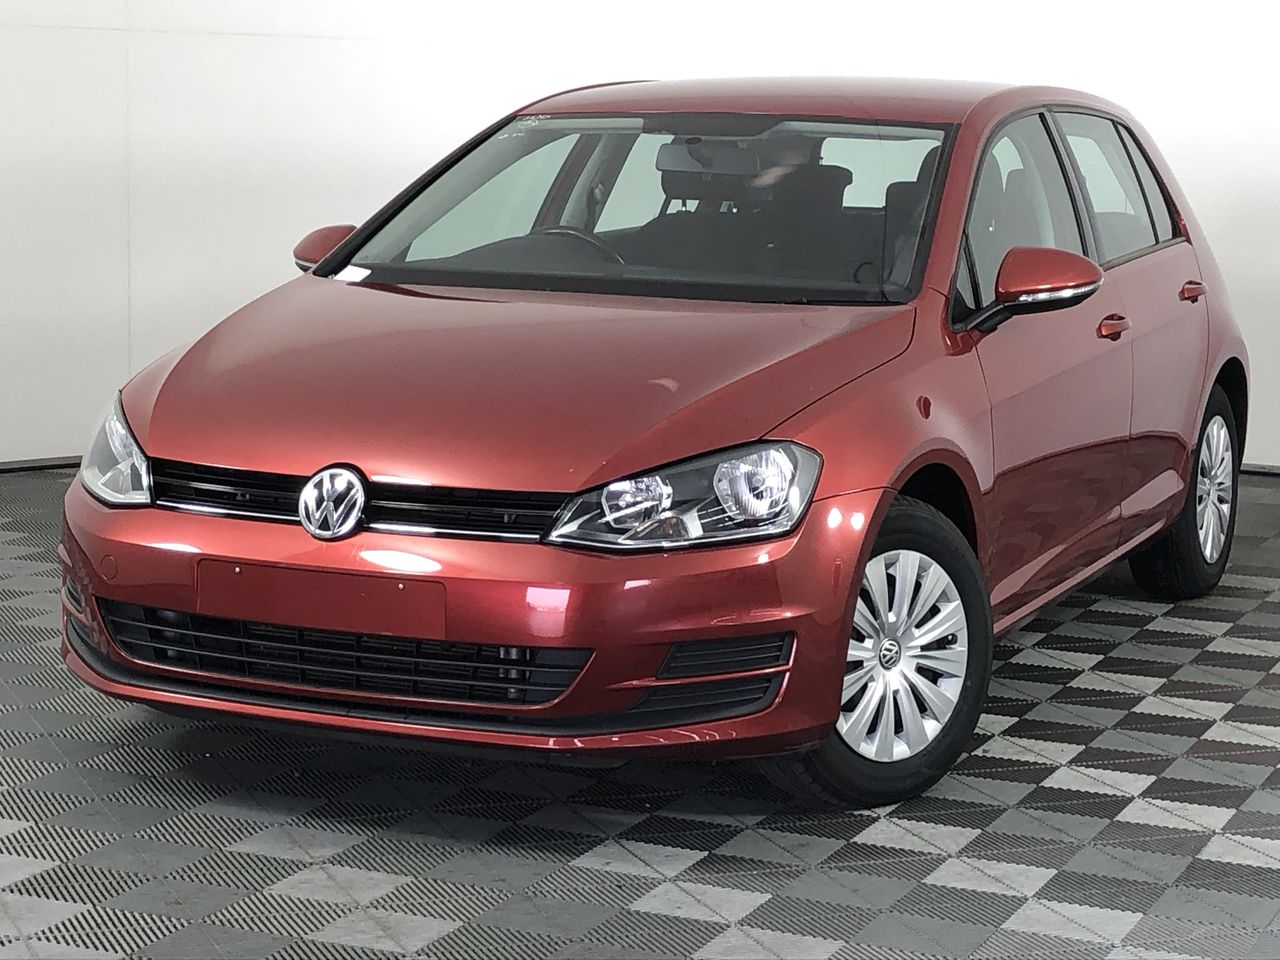 2016 Volkswagen Golf 92TSI A7 Automatic Hatchback